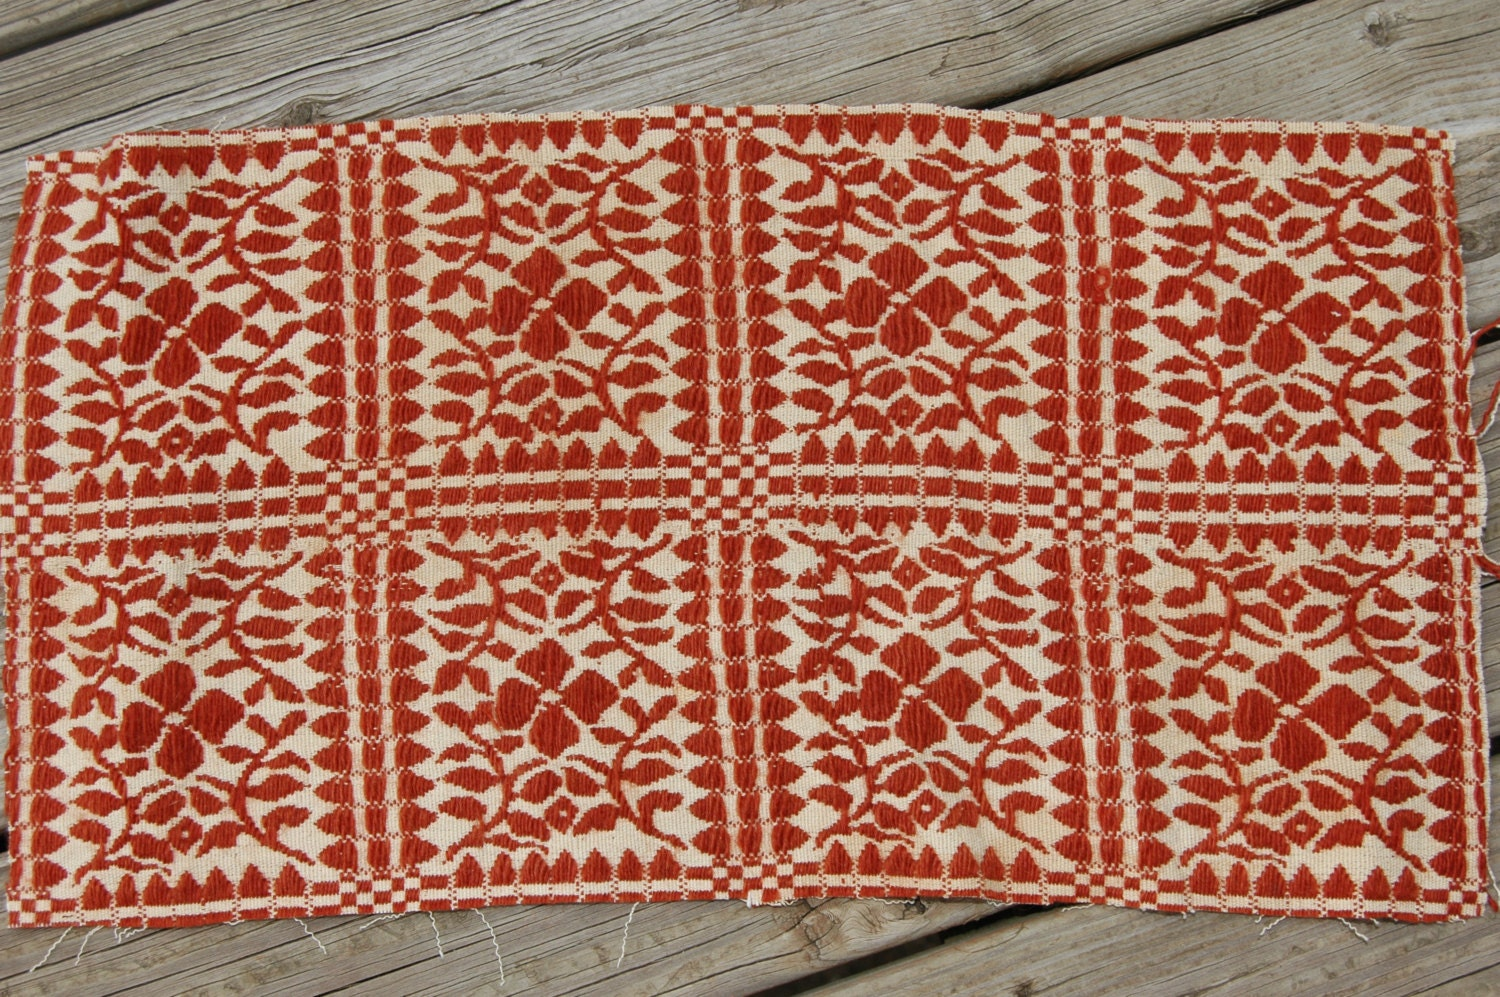 Vintage Rust Oatmeal Antique Woven Coverlet 16 X 23 Piece Fall